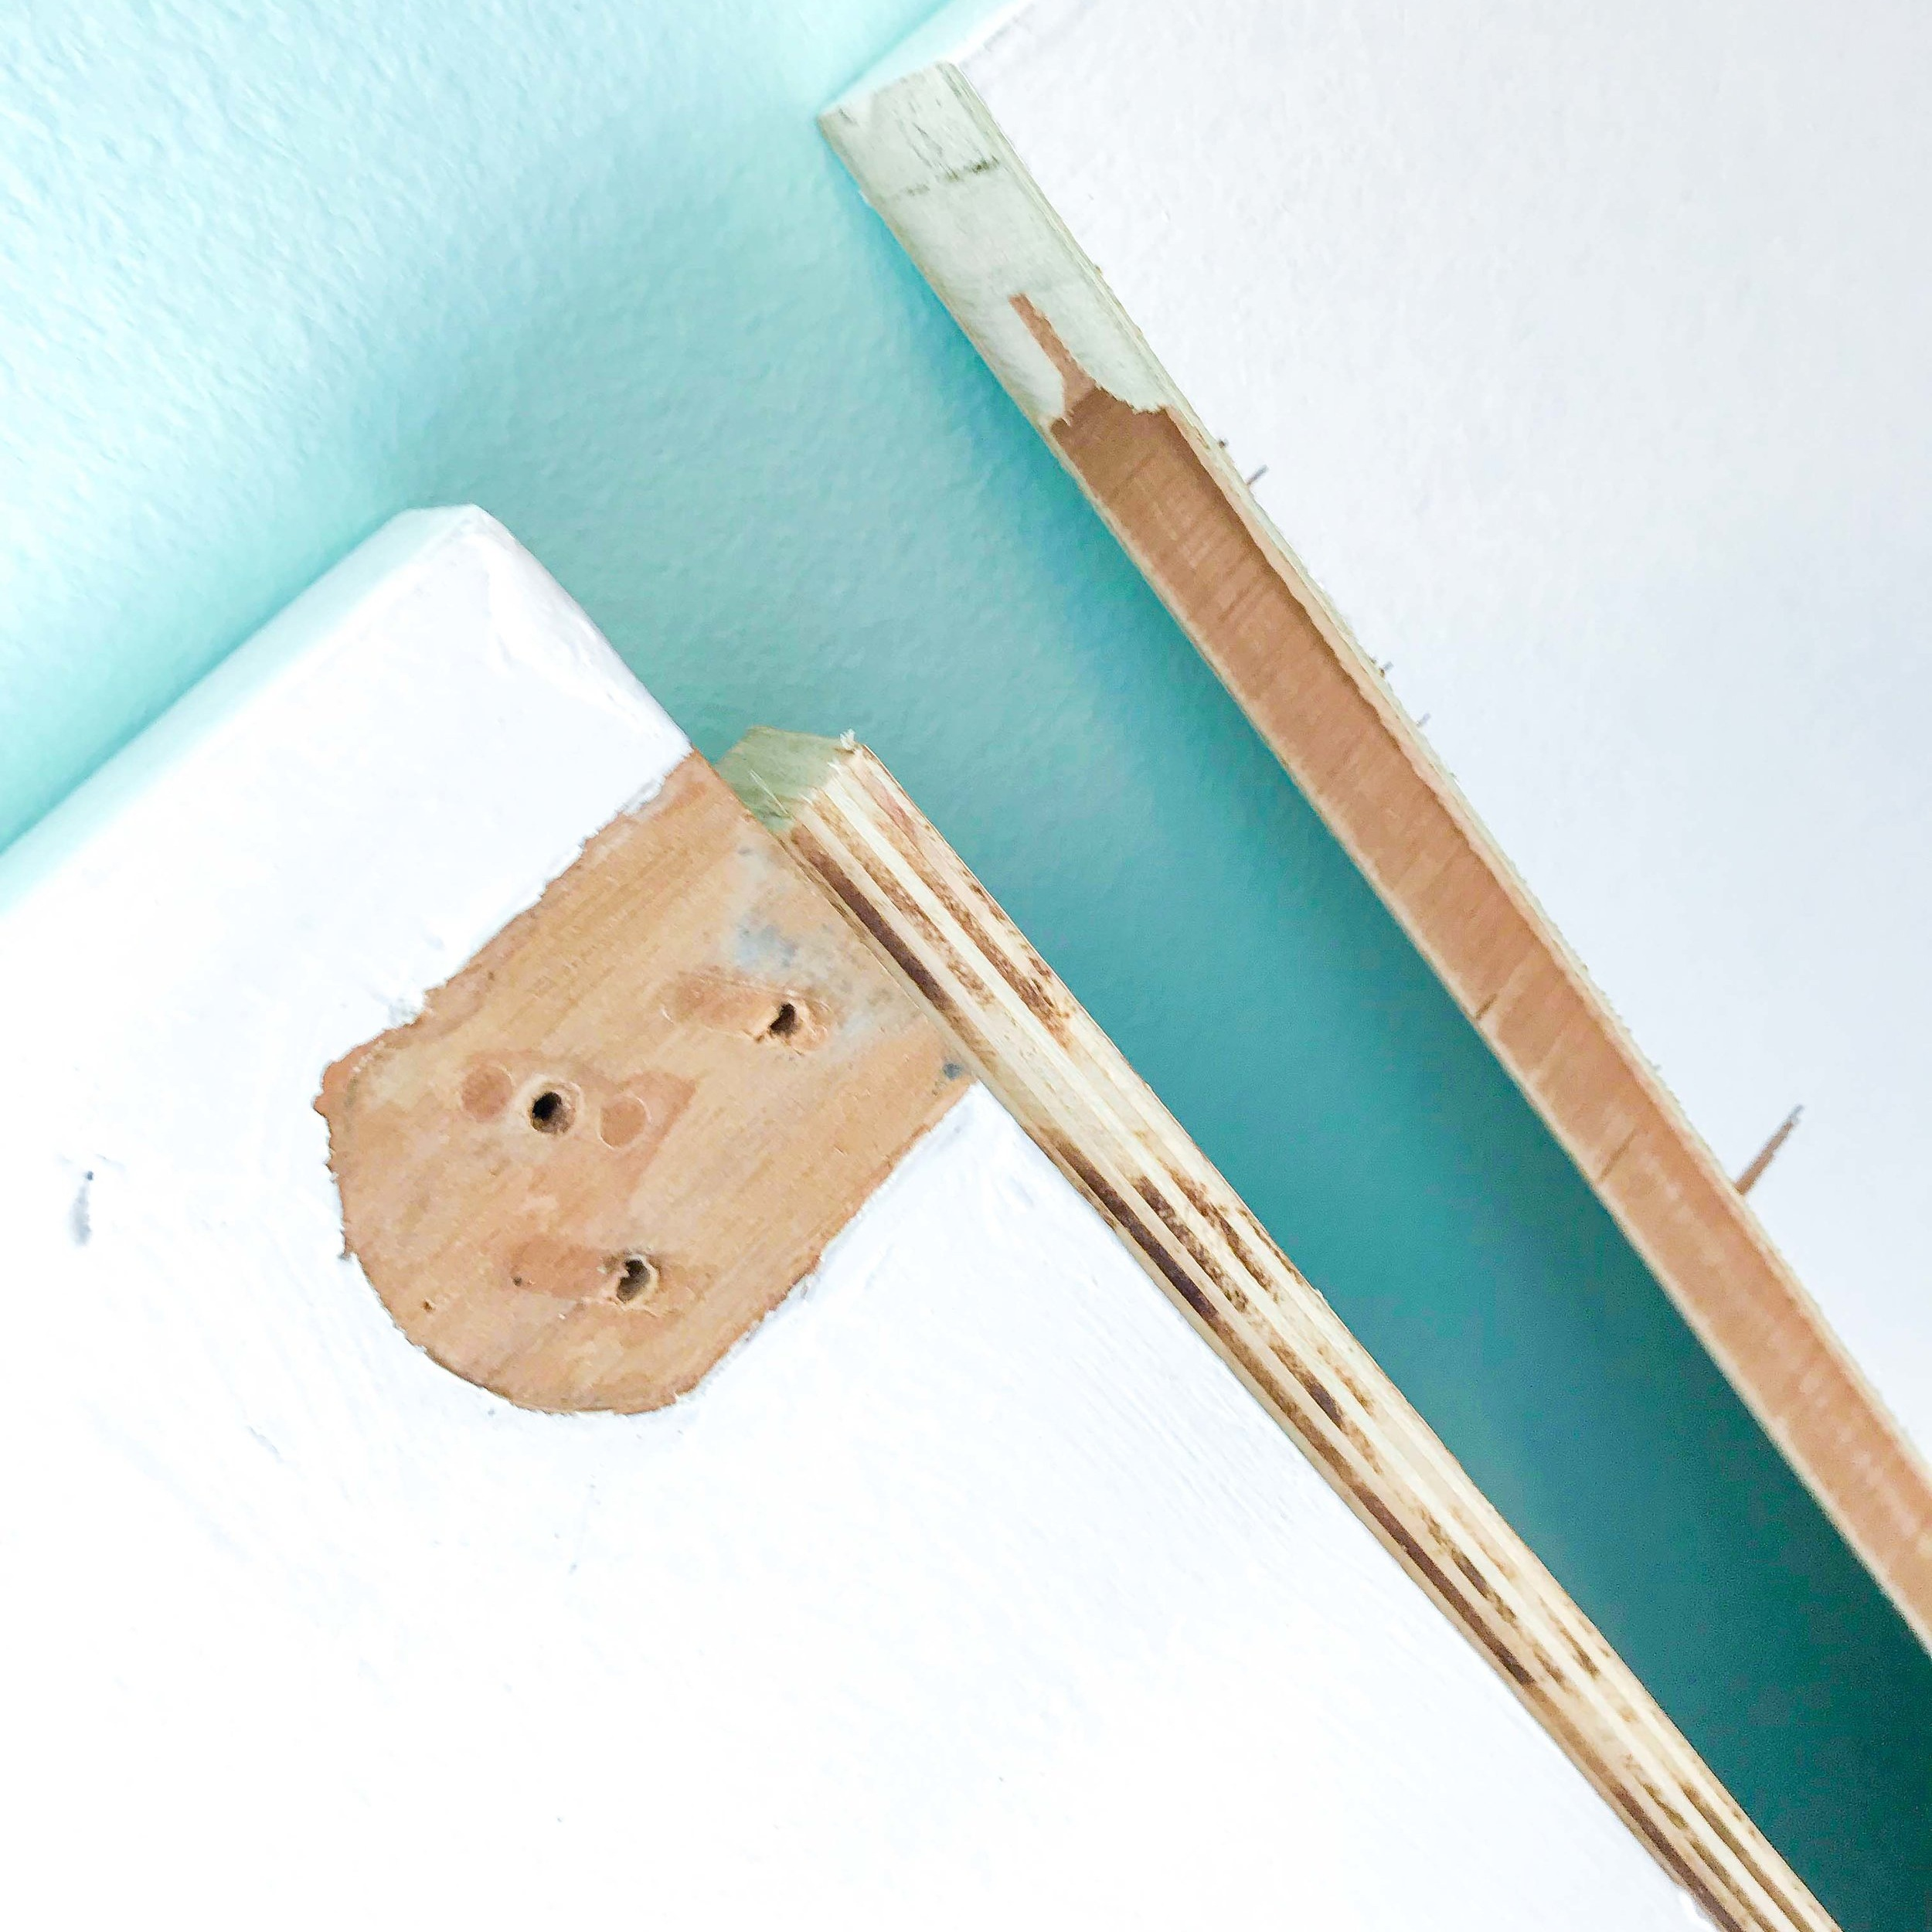 4. Fit the piece of wood into the door cavity.